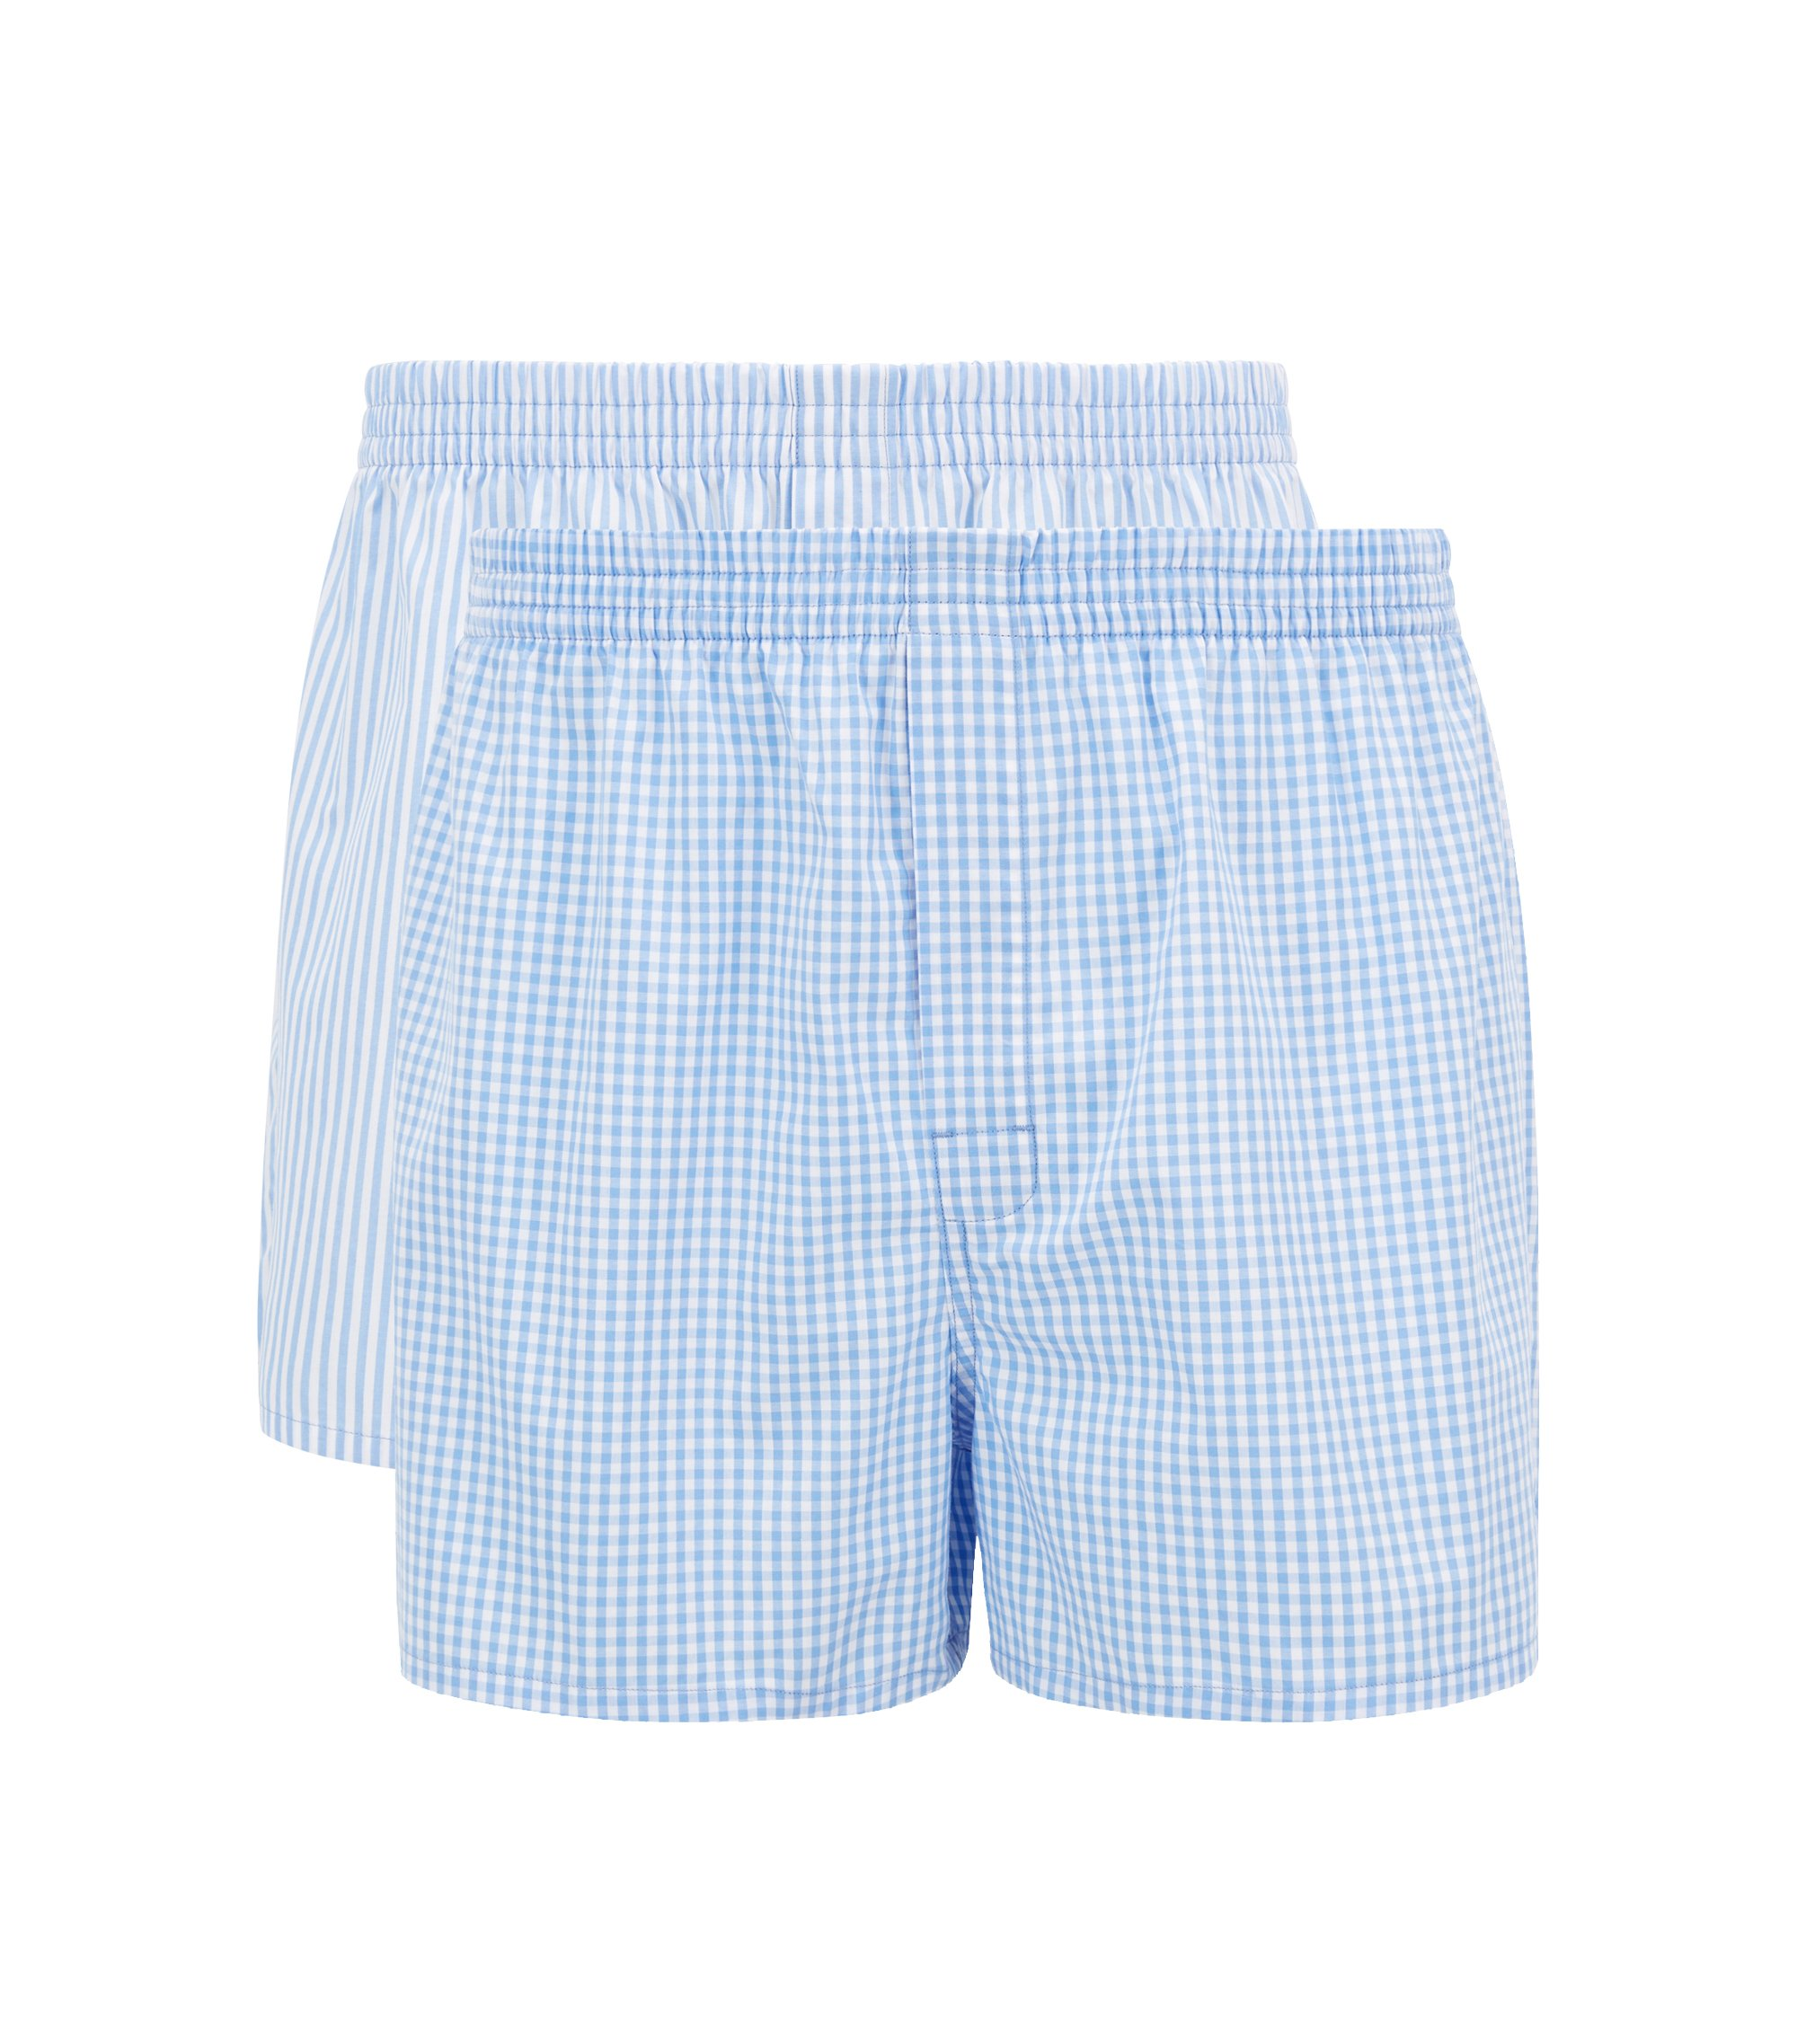 Two-pack of pyjama shorts in pure cotton poplin, Open Blue